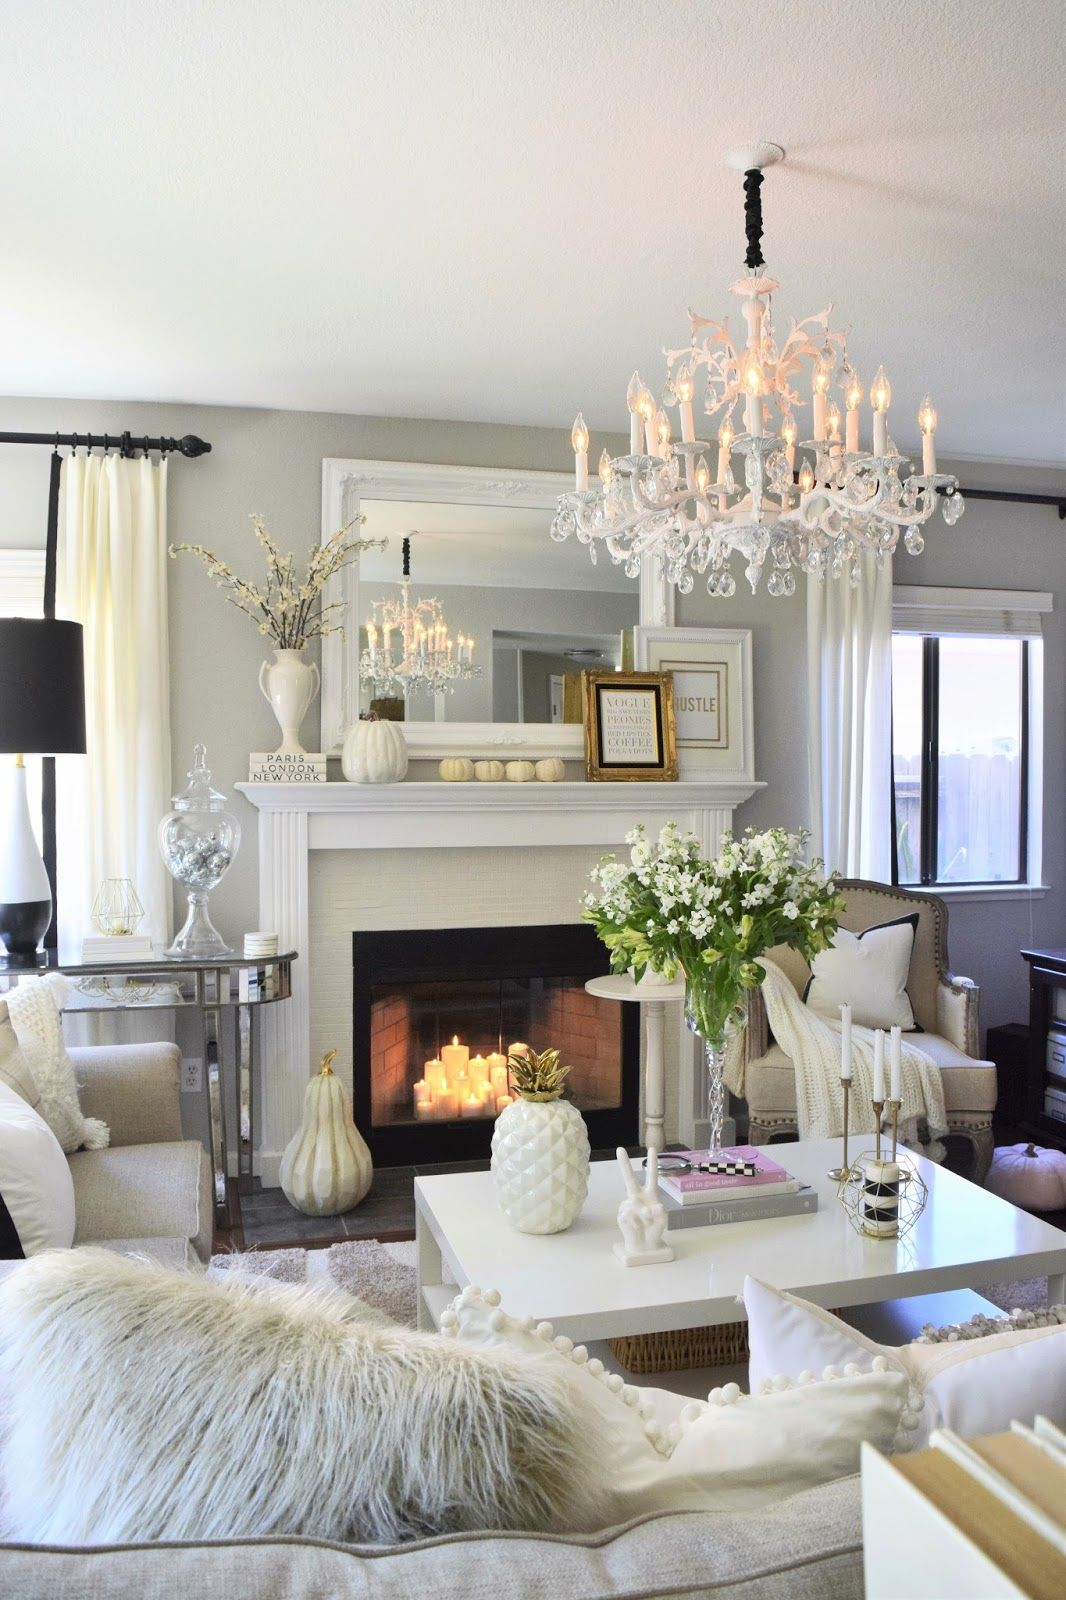 Family Living Room Designs: The Case For Decorating With Neutrals